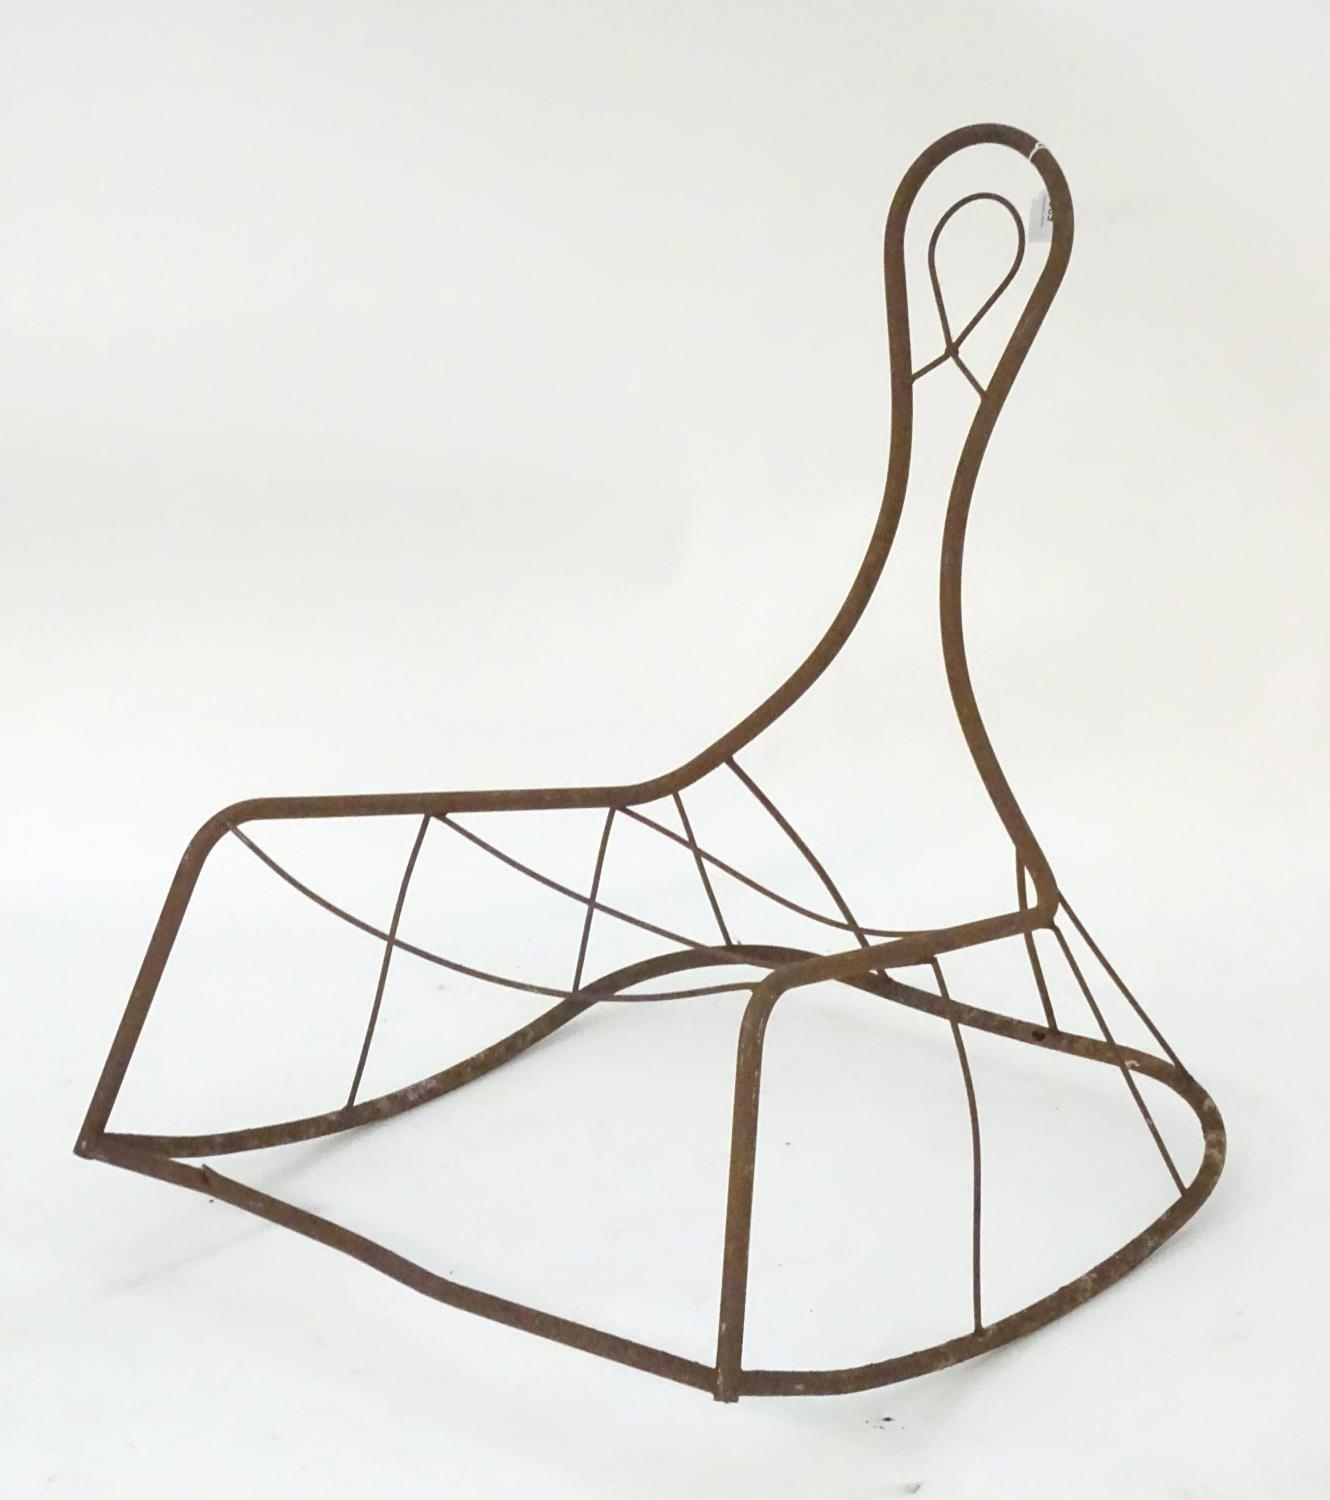 Garden & Architectural, Salvage: a mid-20thC metal rocking chair frame, suitable for use as a - Image 4 of 6